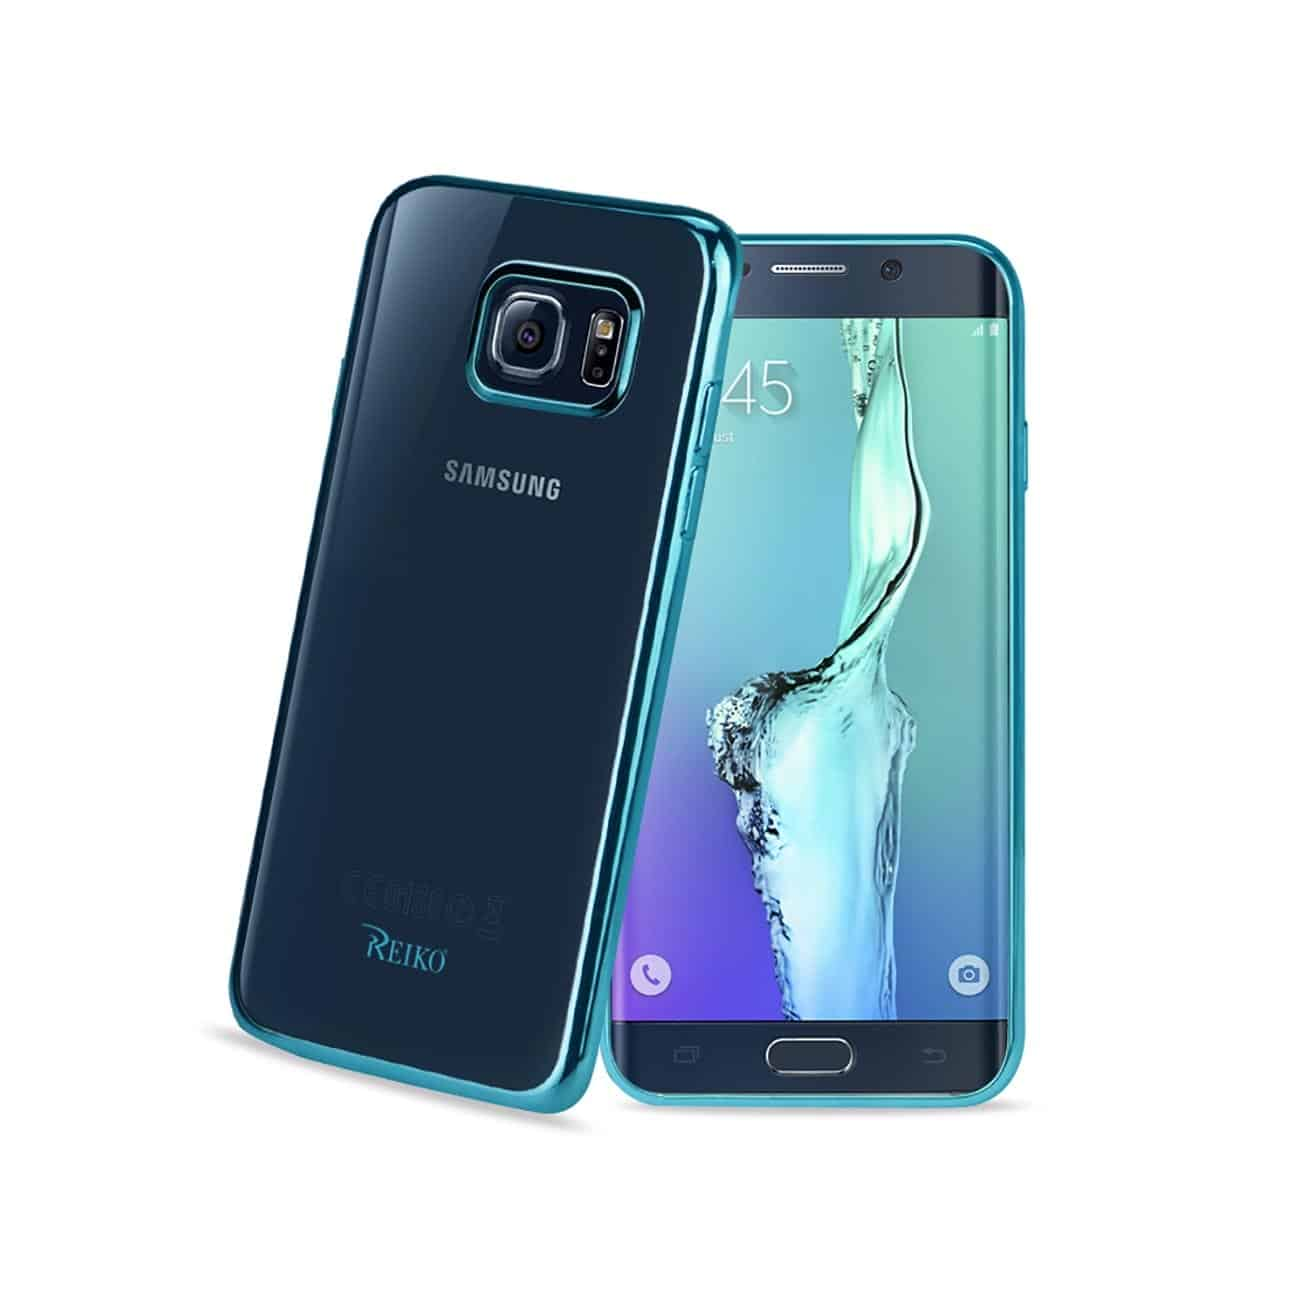 SAMSUNG GALAXY S6 EDGE FRAME CASE IN SHINY BLUE